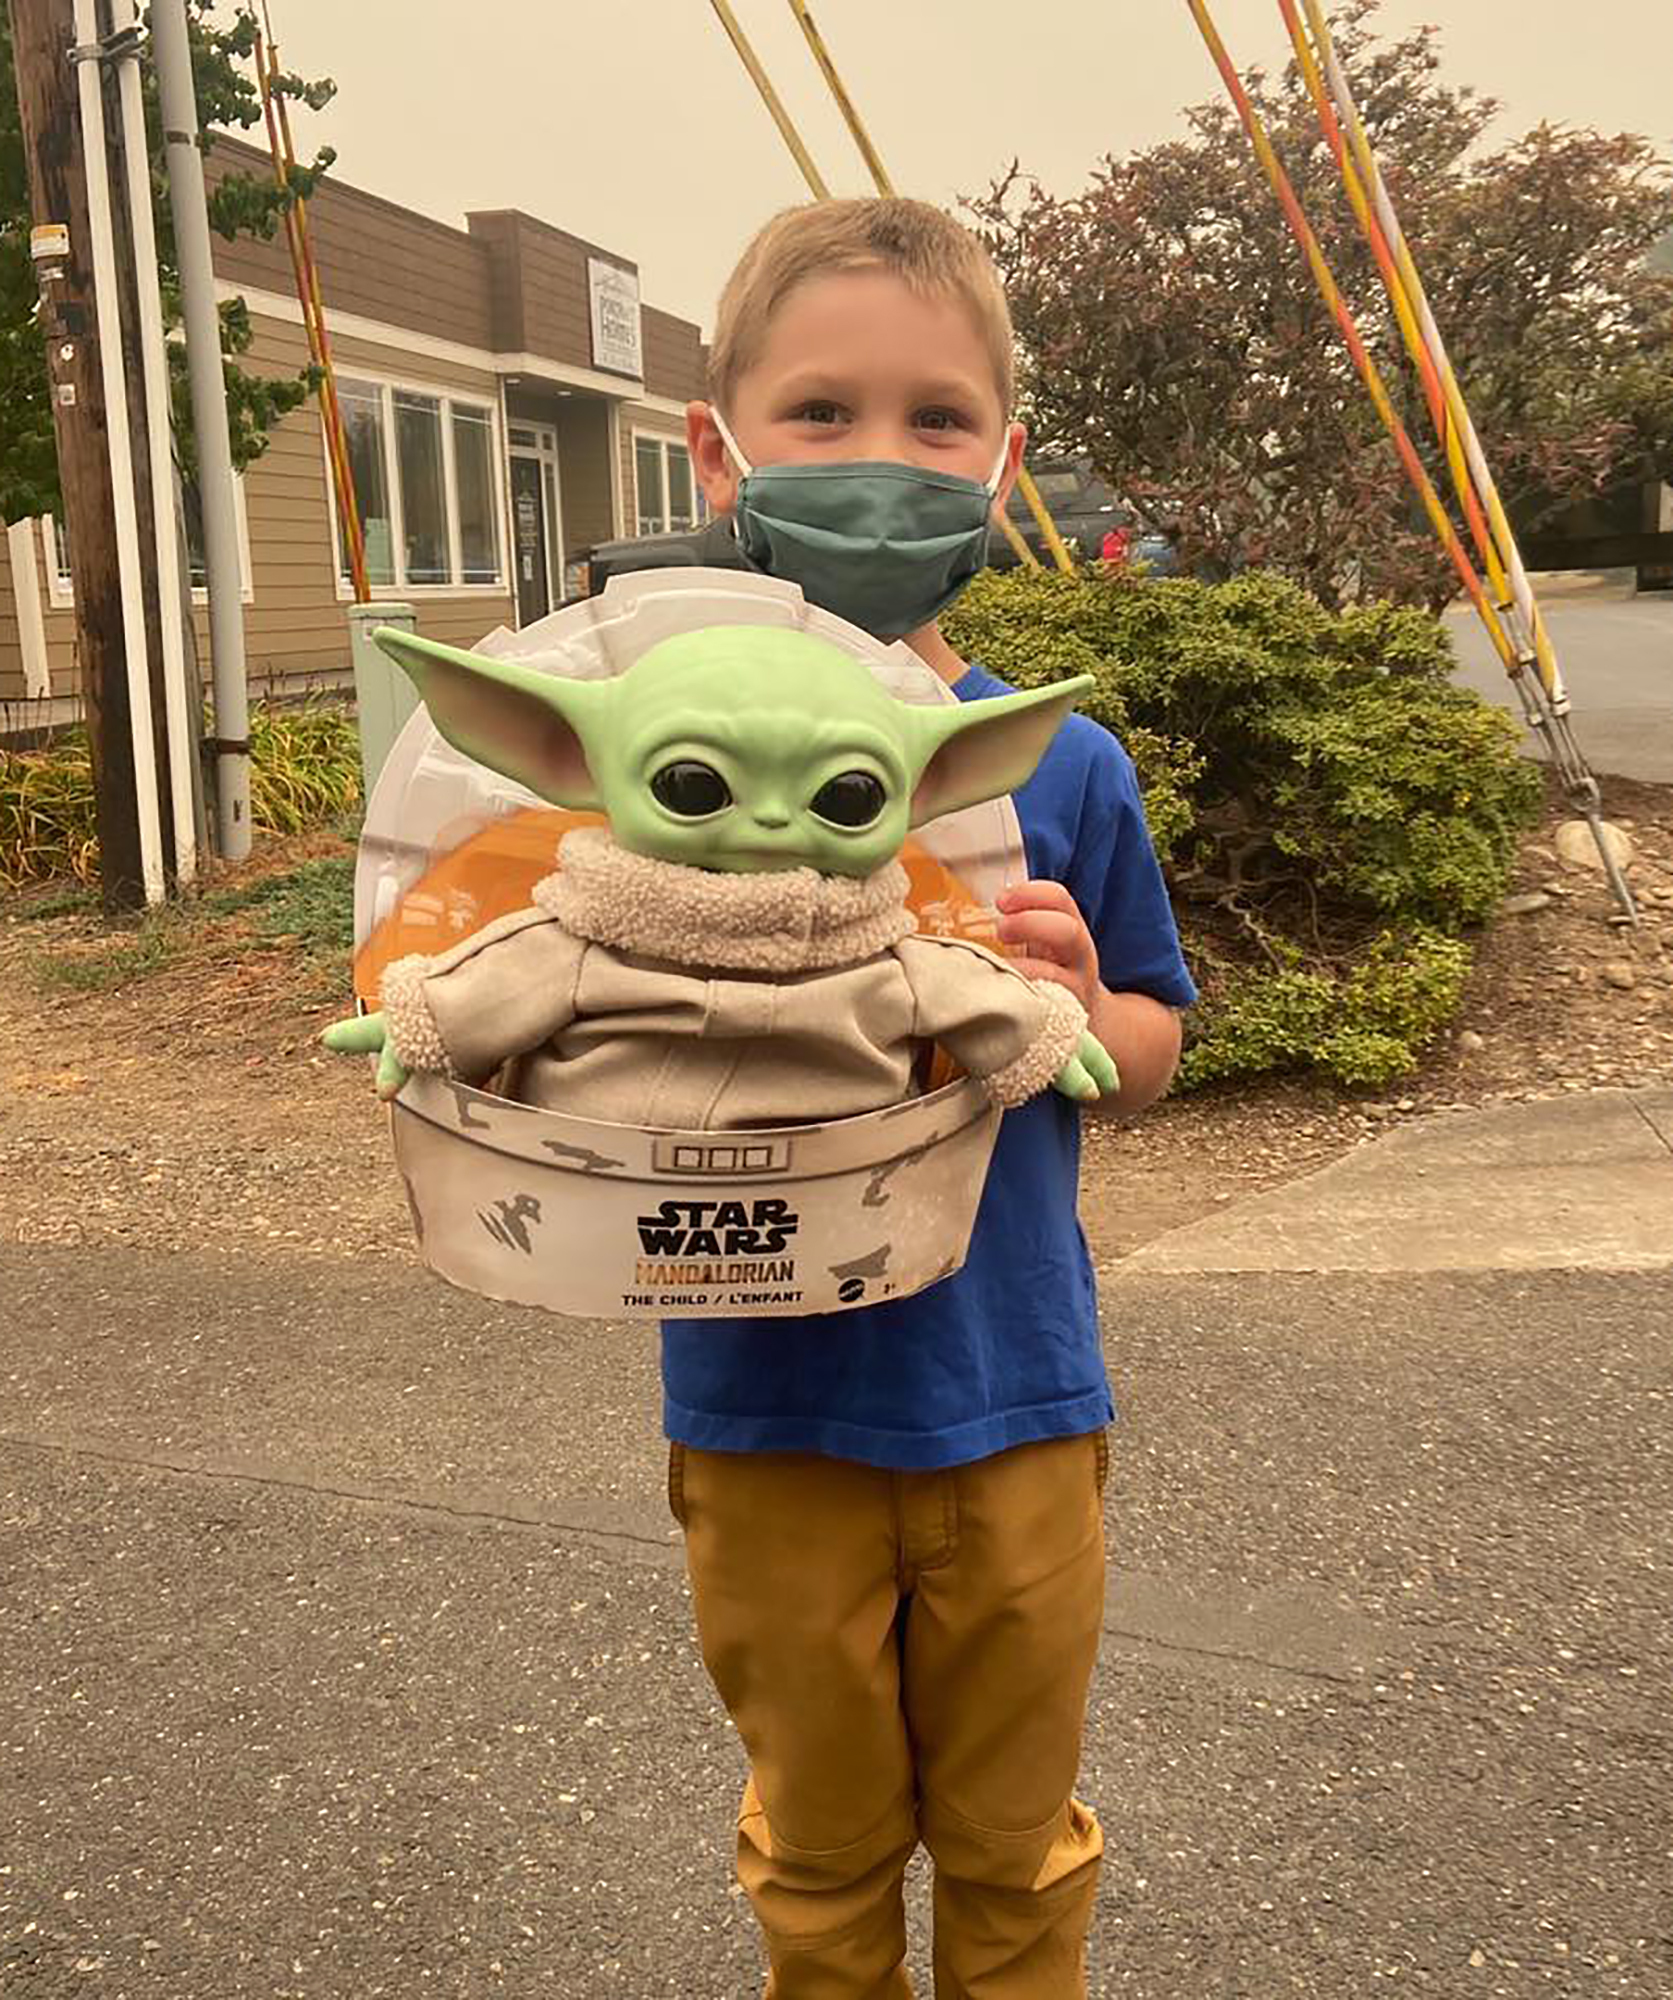 Five-year-old Carver holds up a Baby Yoda toy in Scappoose, Oregon